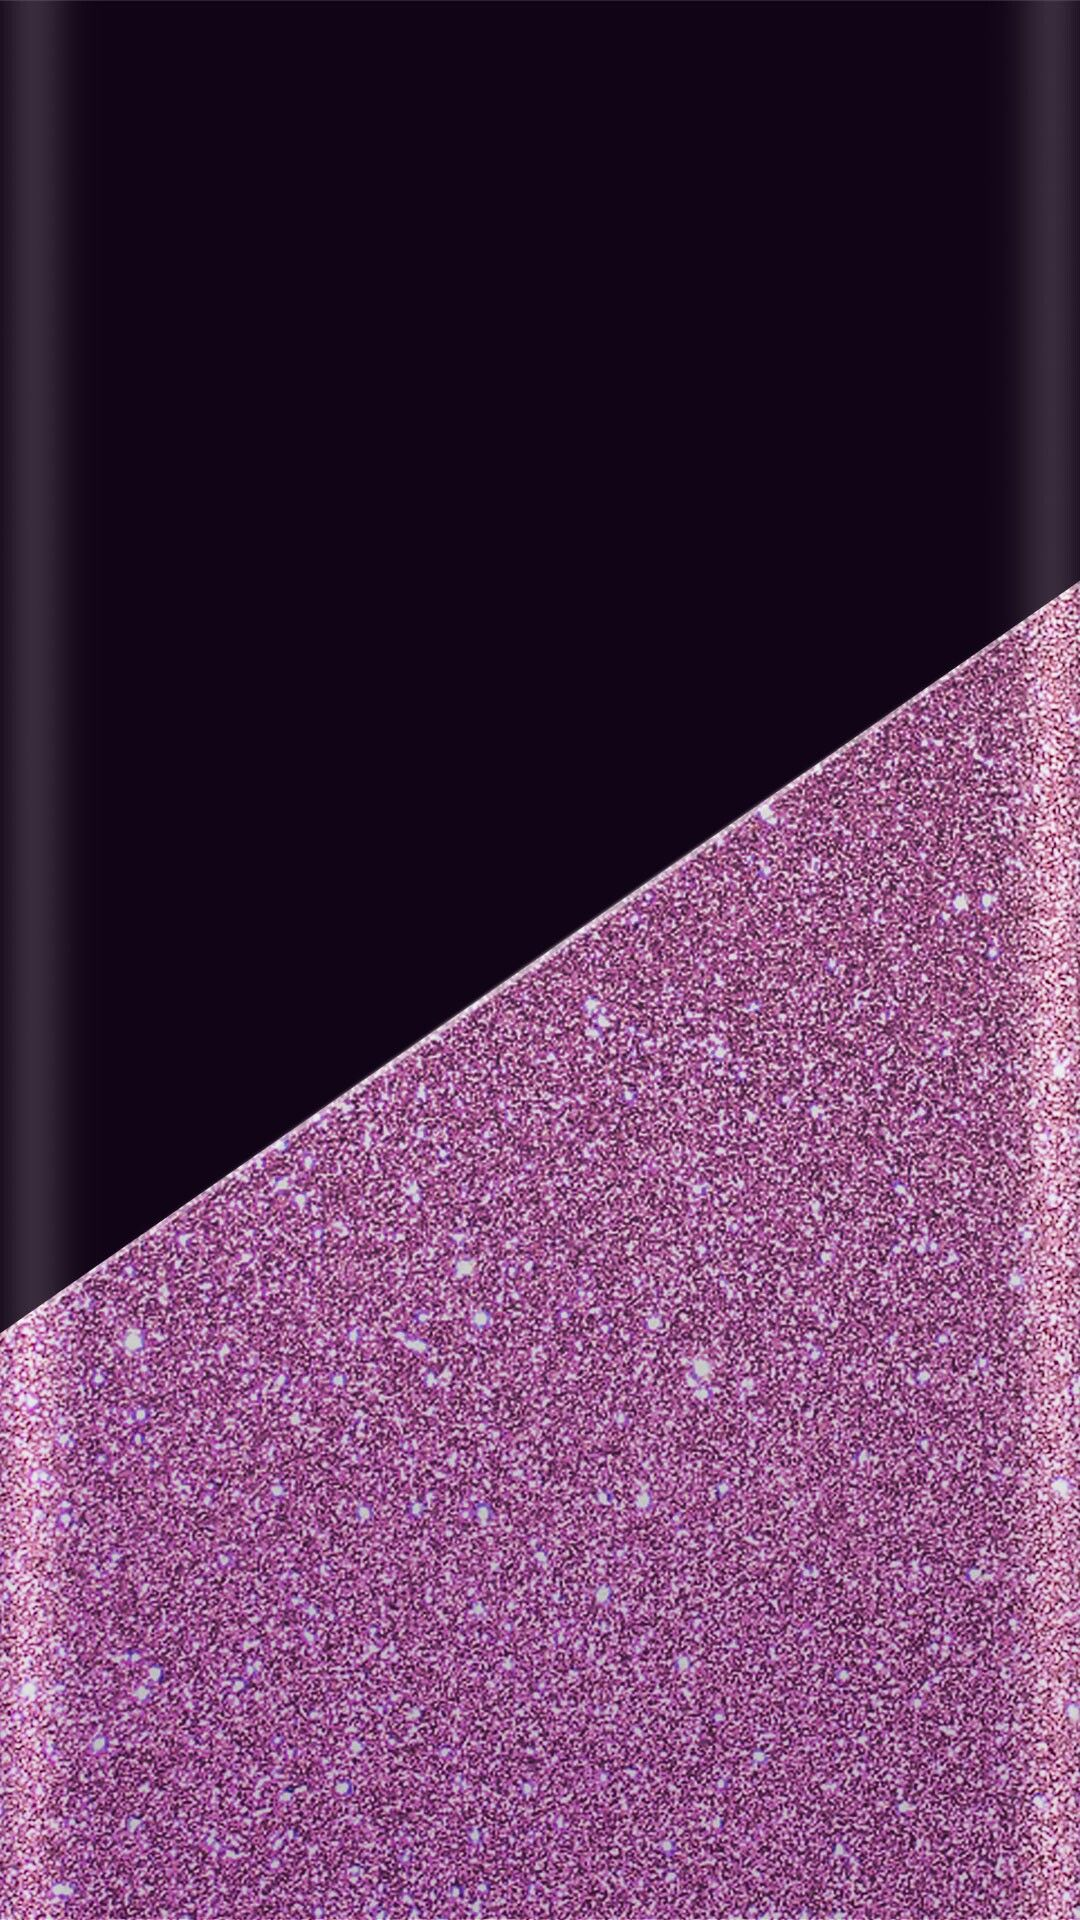 Black And Purple Iphone Wallpapers Pinterest Wallpaper Iphone